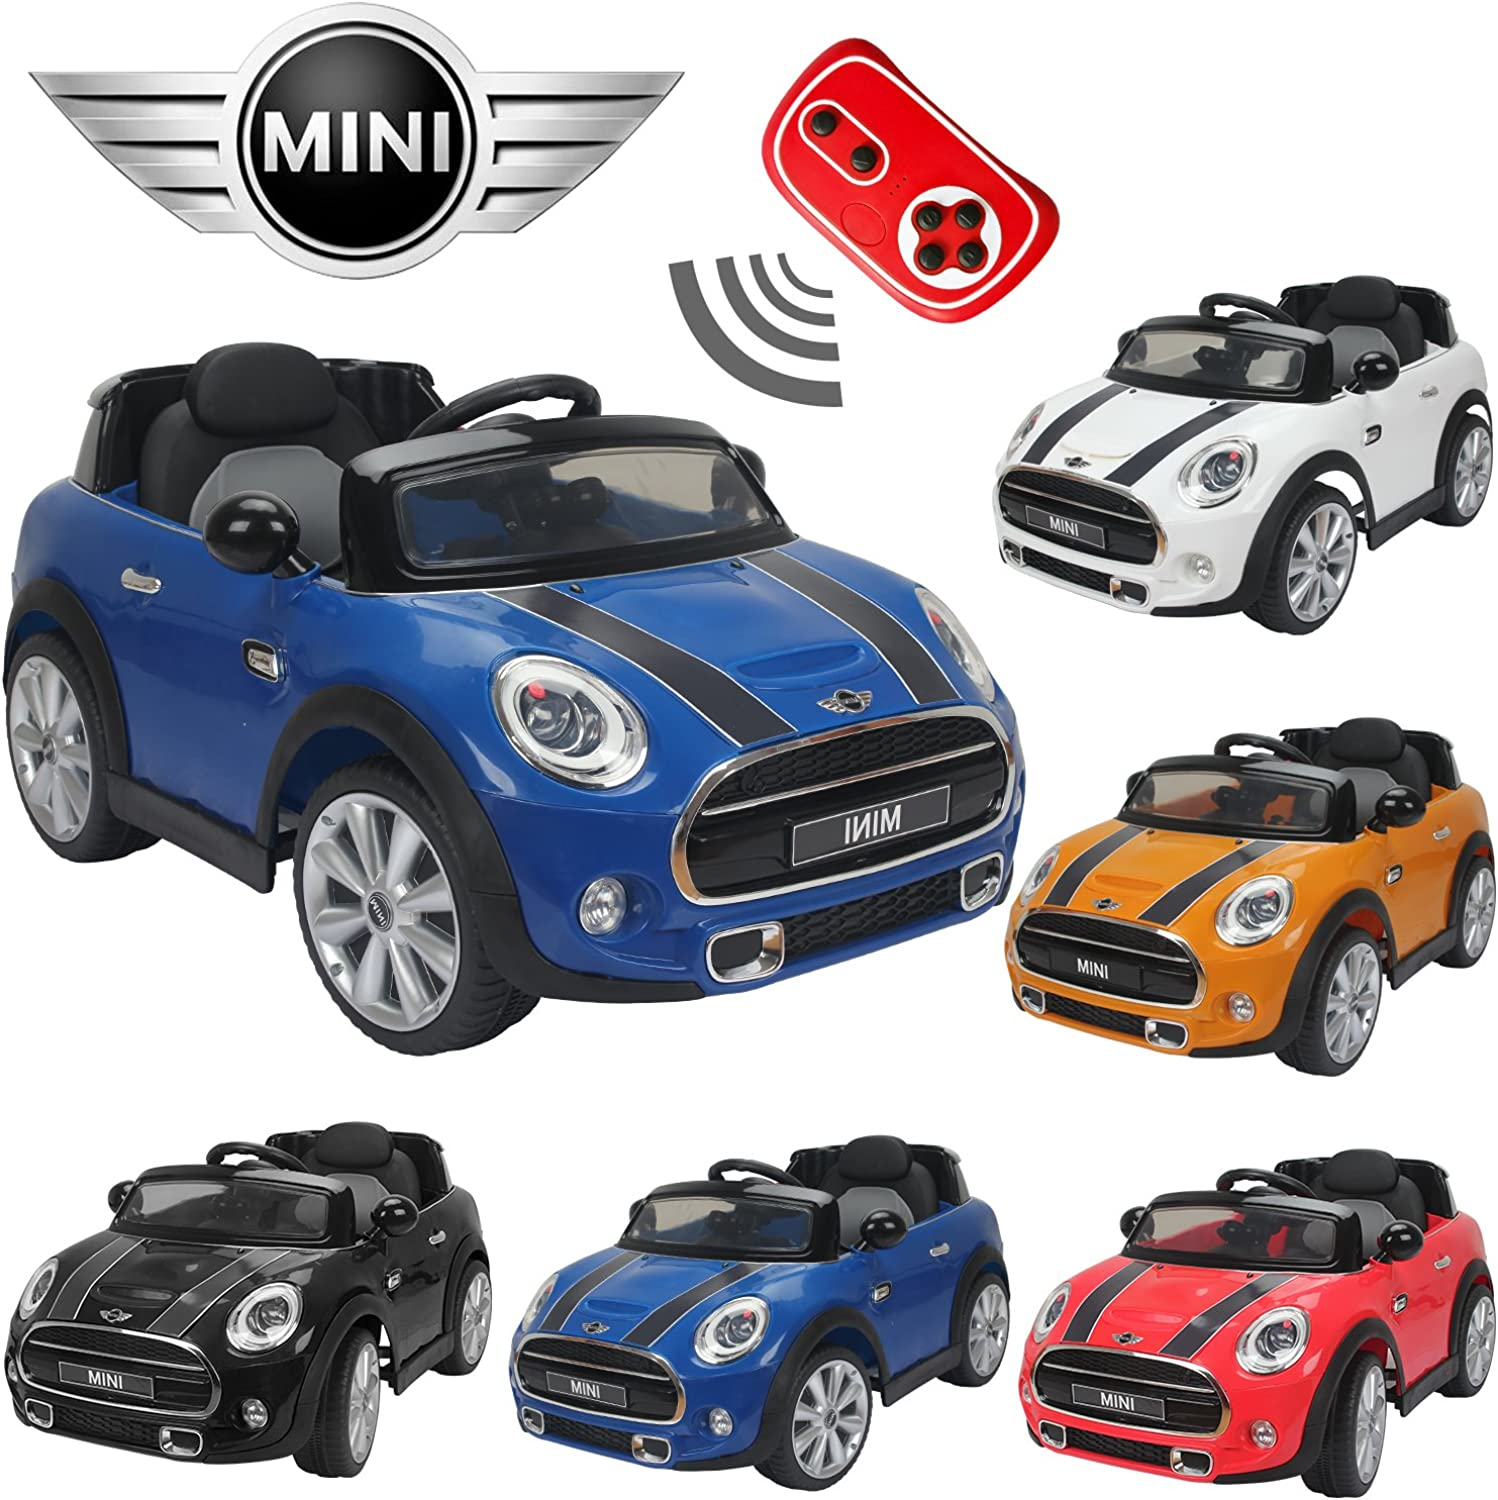 MINI COOPER Licensed 12V Kids Ride On Twin Motor Remote Control Car   Cars - bluee